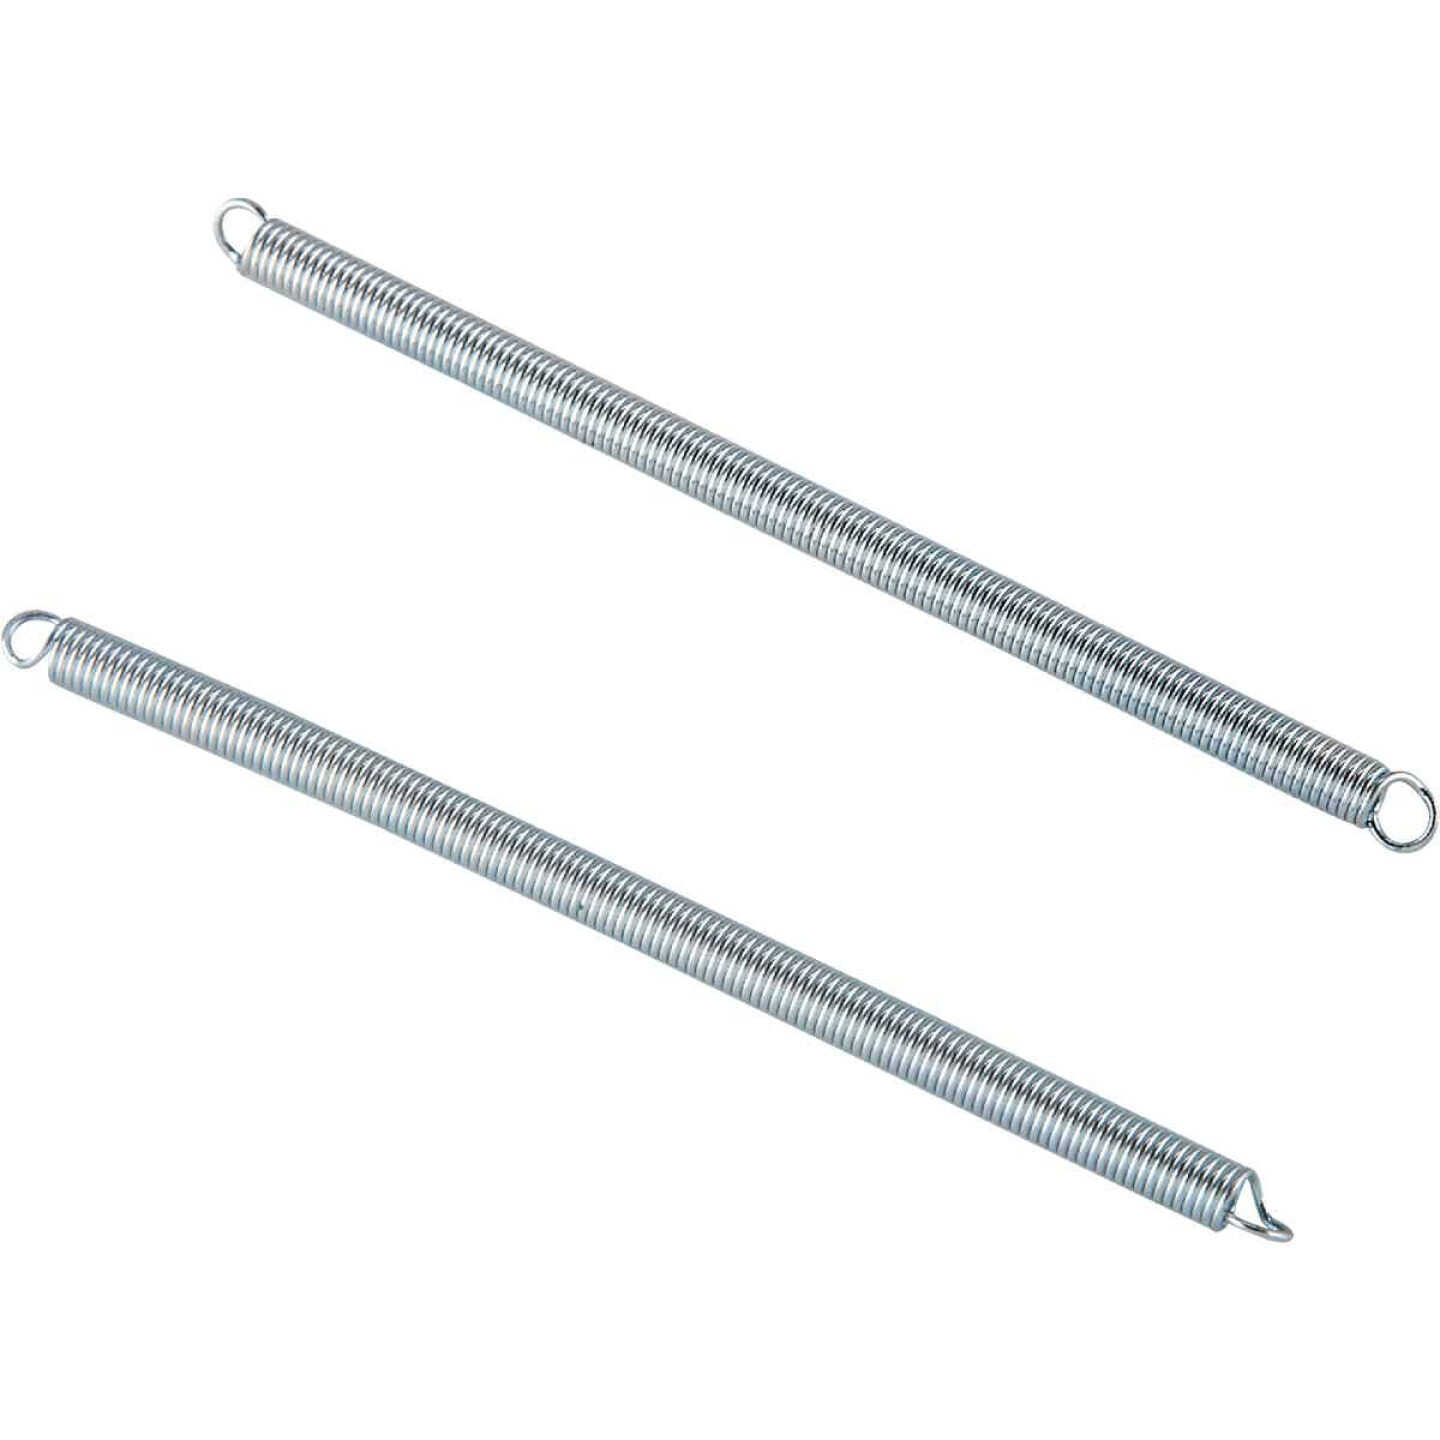 Century Spring 3-1/4 In. x 1/4 In. Extension Spring (2 Count) Image 1